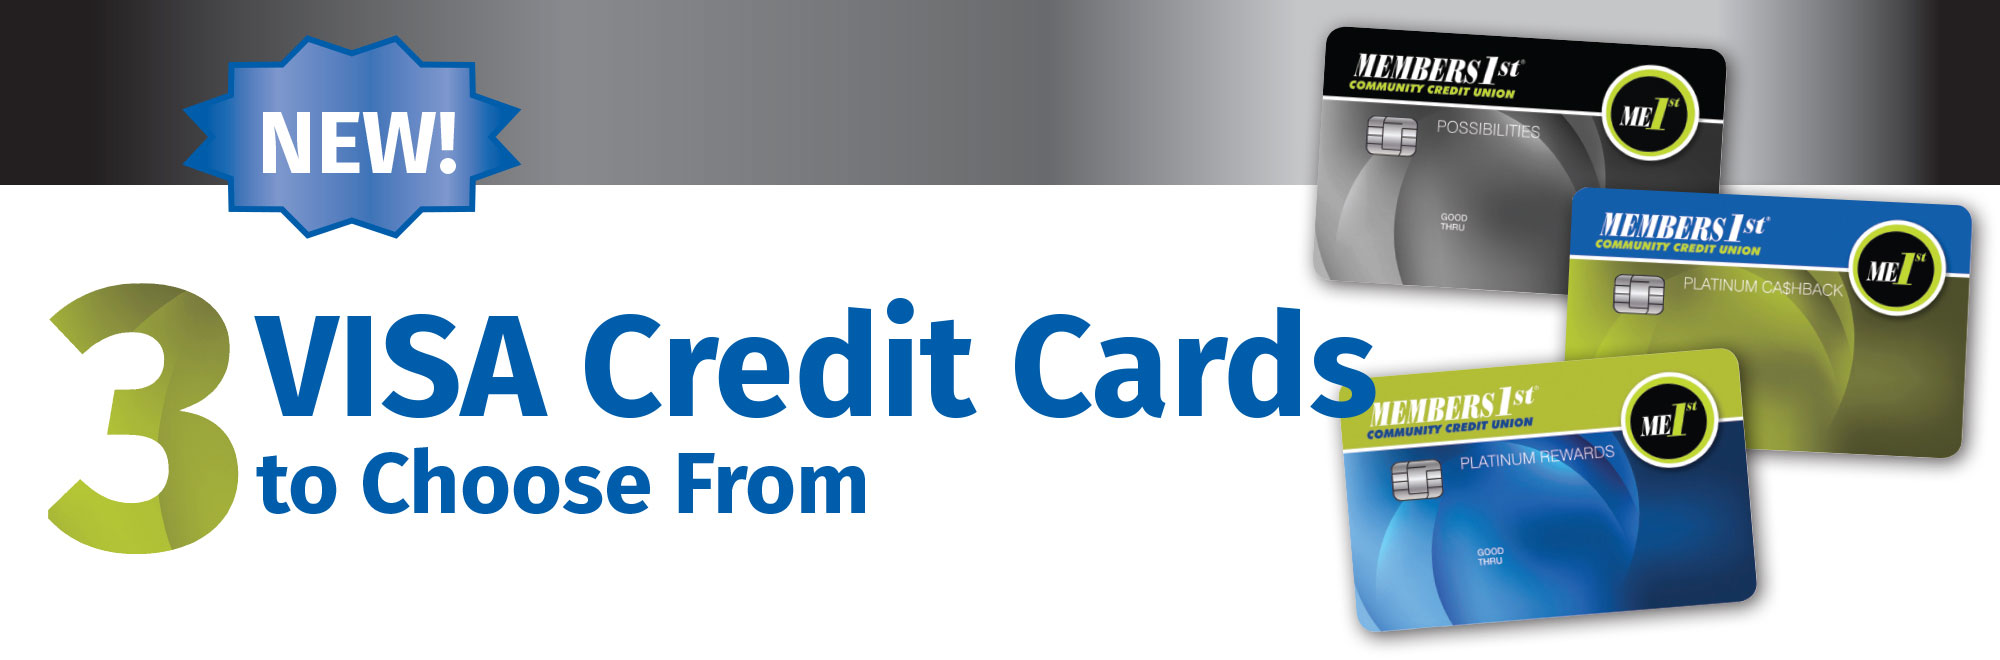 3 new VISA credit cards to choose from!